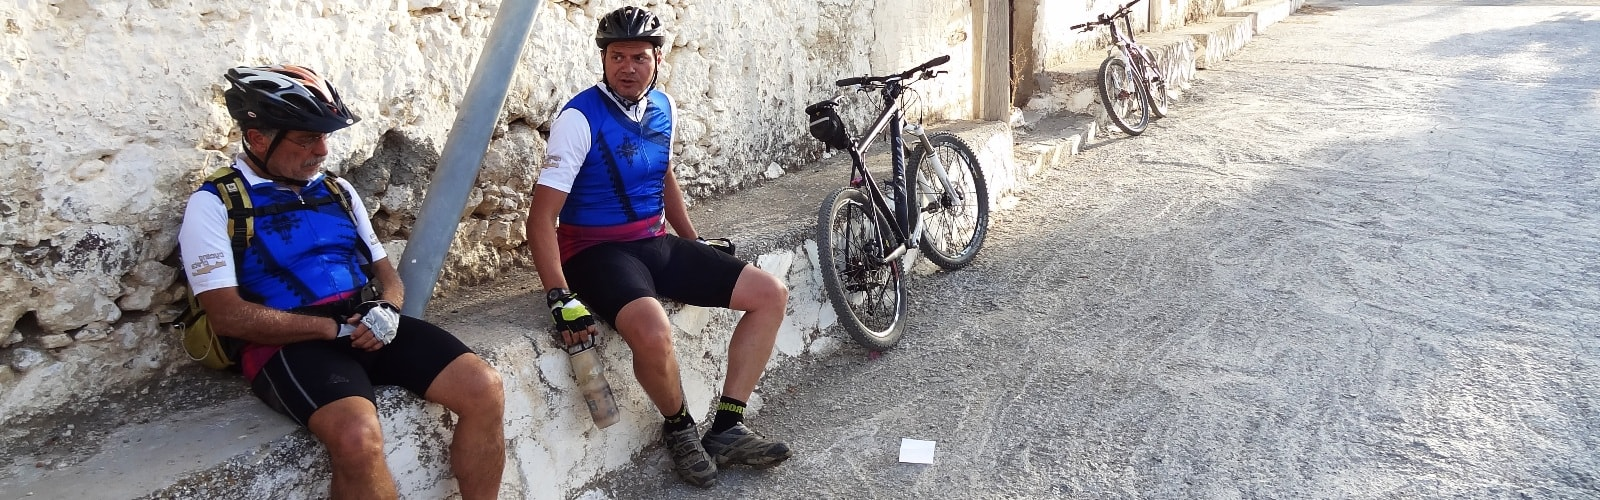 cyclists-stop-for-siesta-min